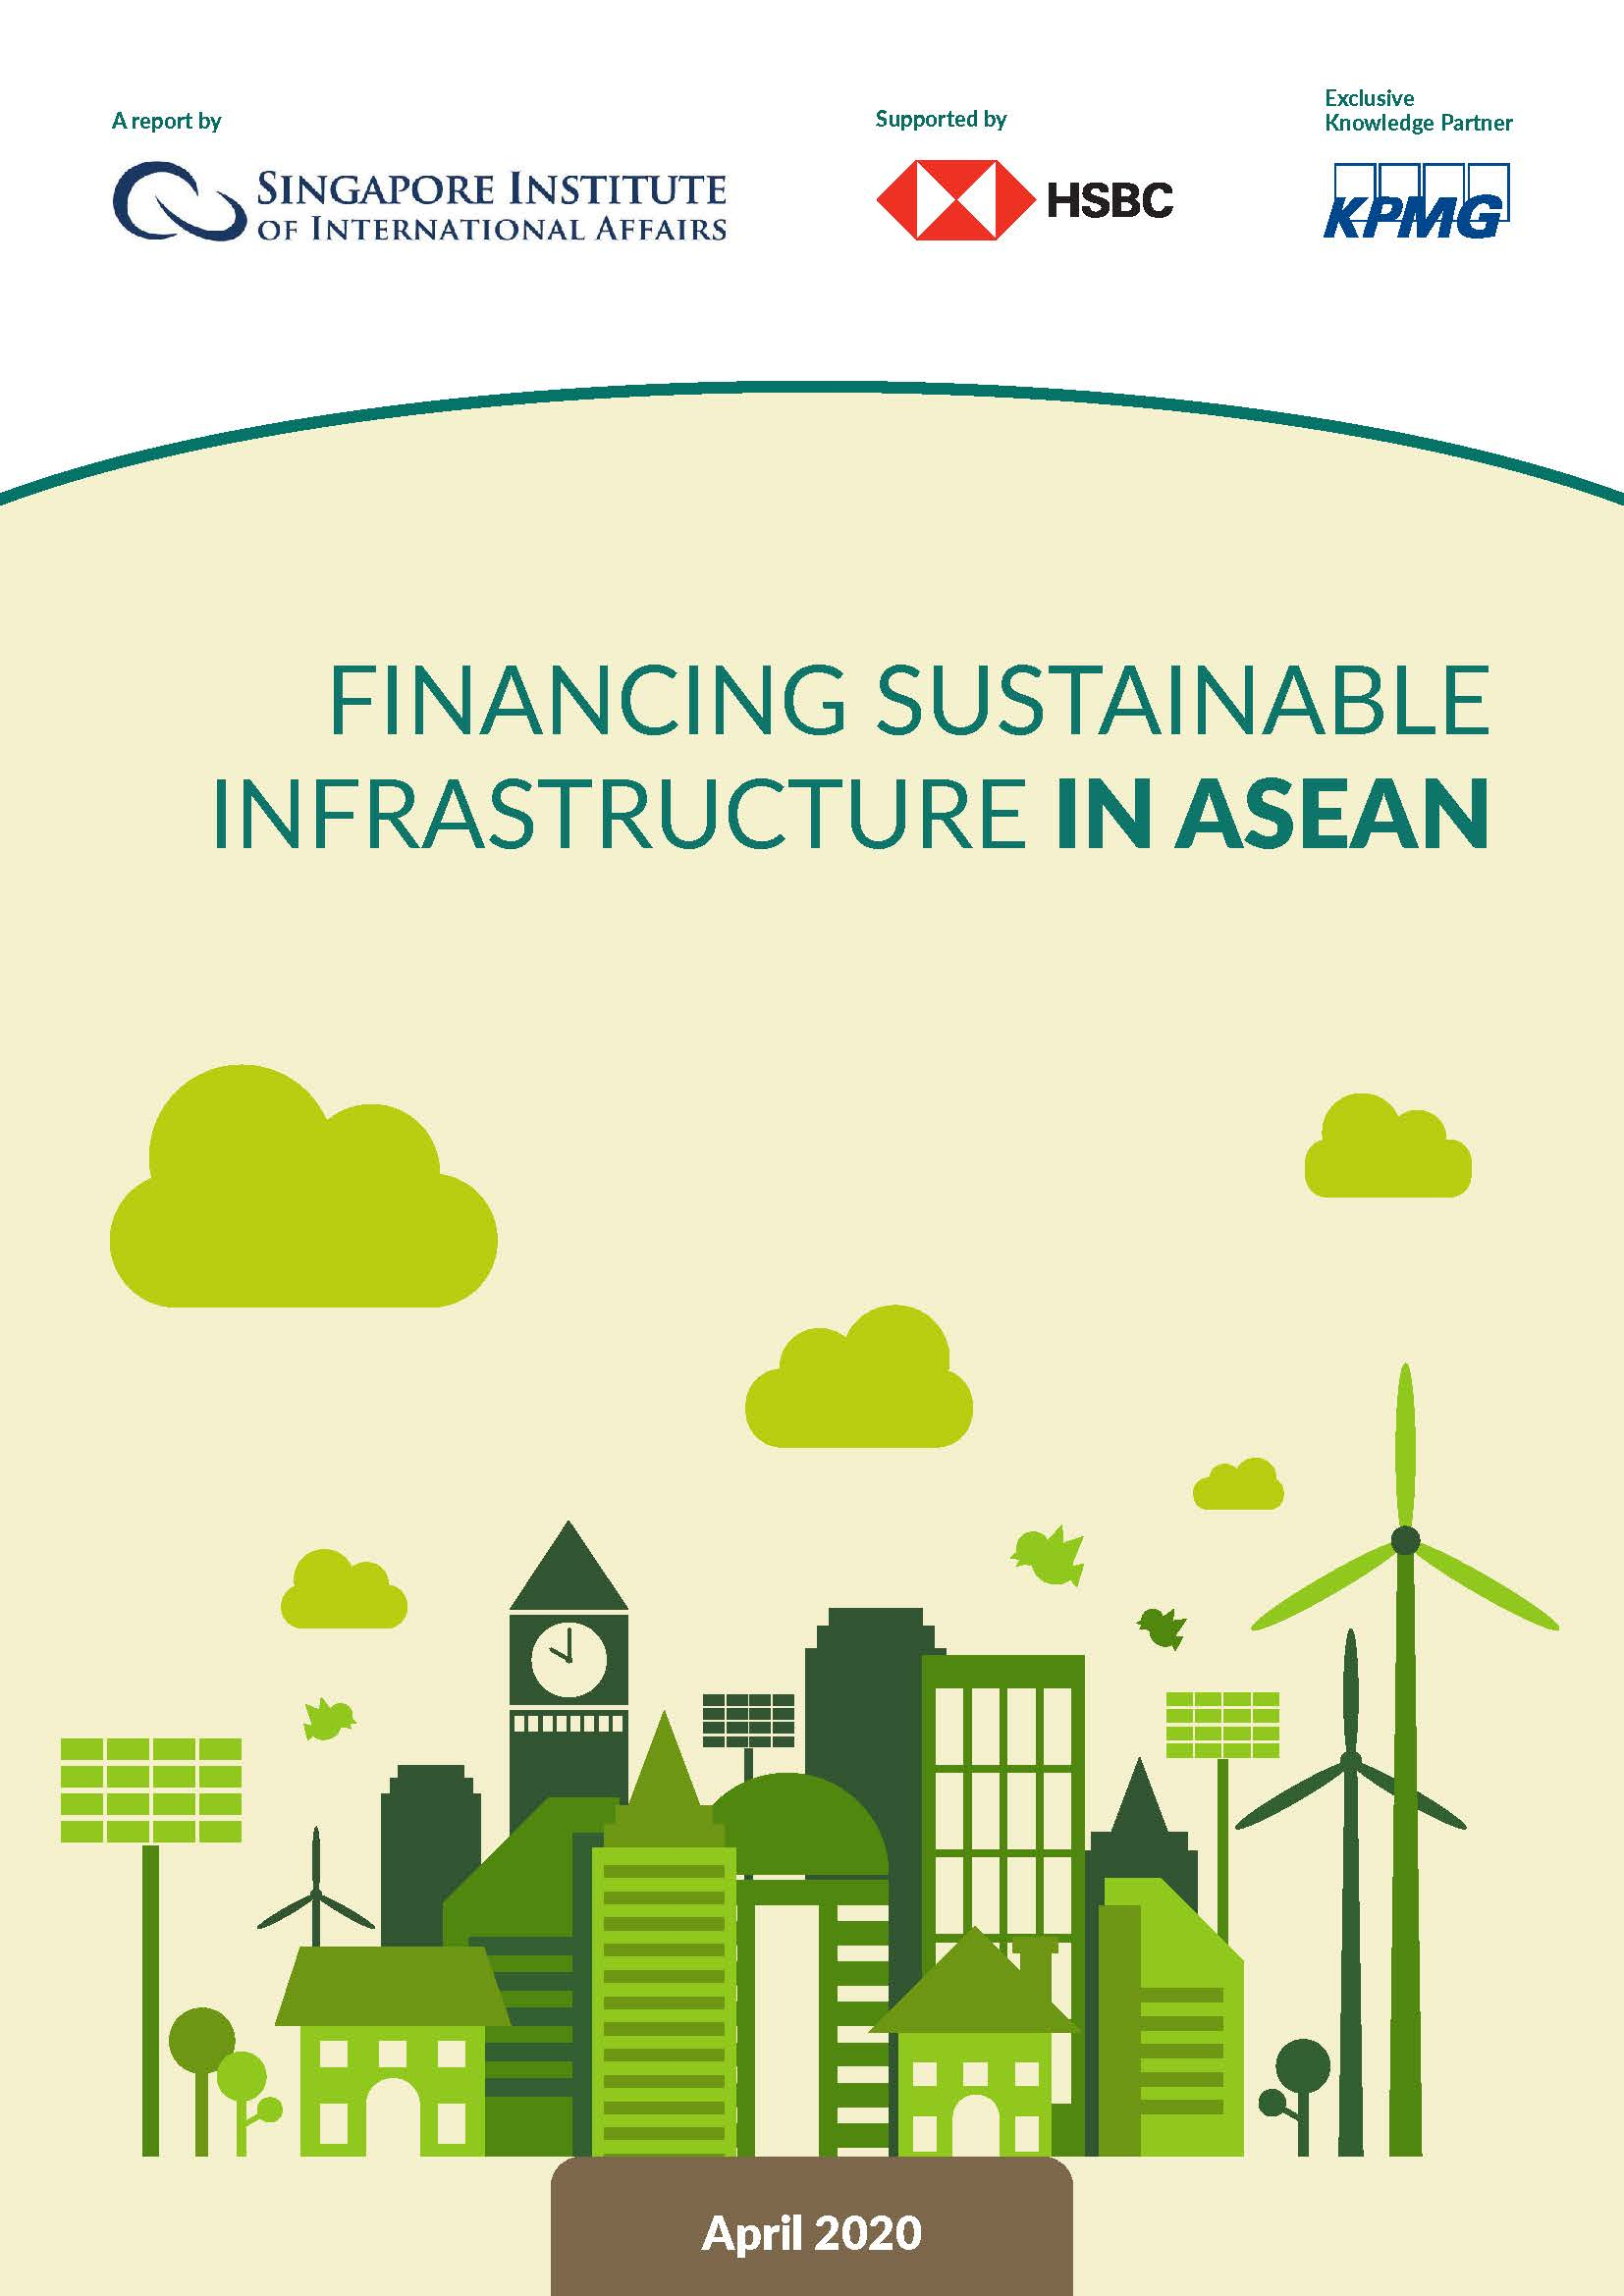 Cover Image - Financing-Sustainable-Infrastructure-in-ASEAN-SIIA-Report